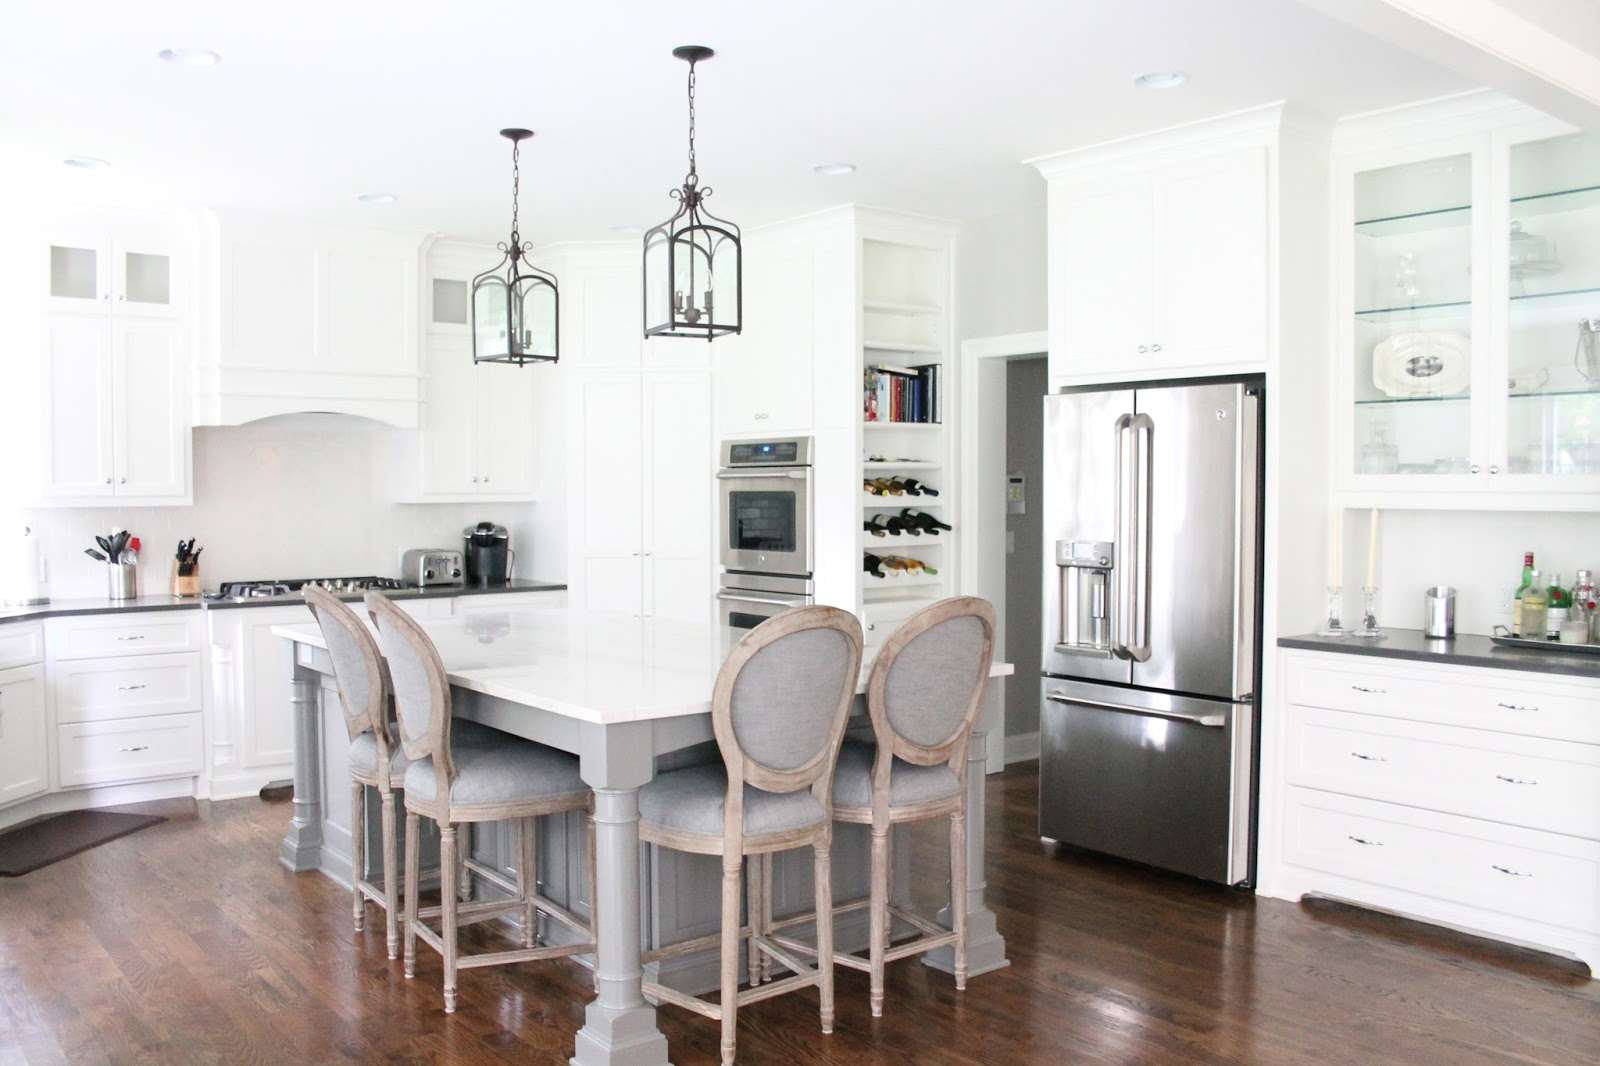 A new cape cod with a kitchen dreams are made of for Cape cod kitchens pictures